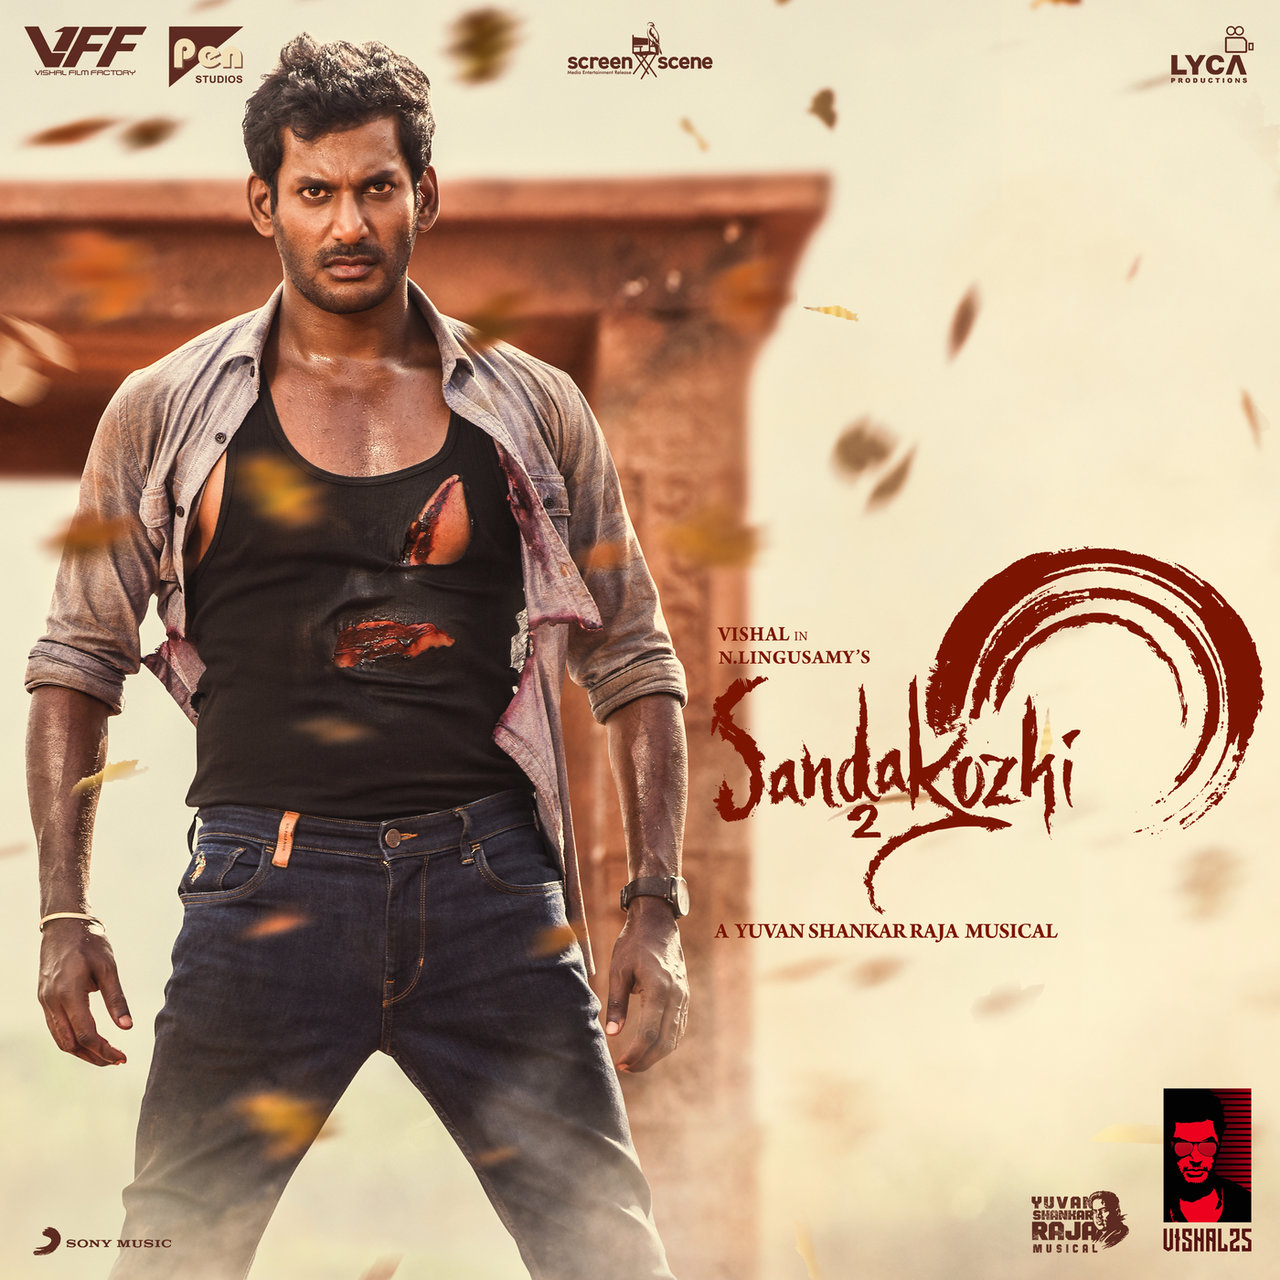 Sandakozhi 2 (Original Motion Picture Soundtrack)